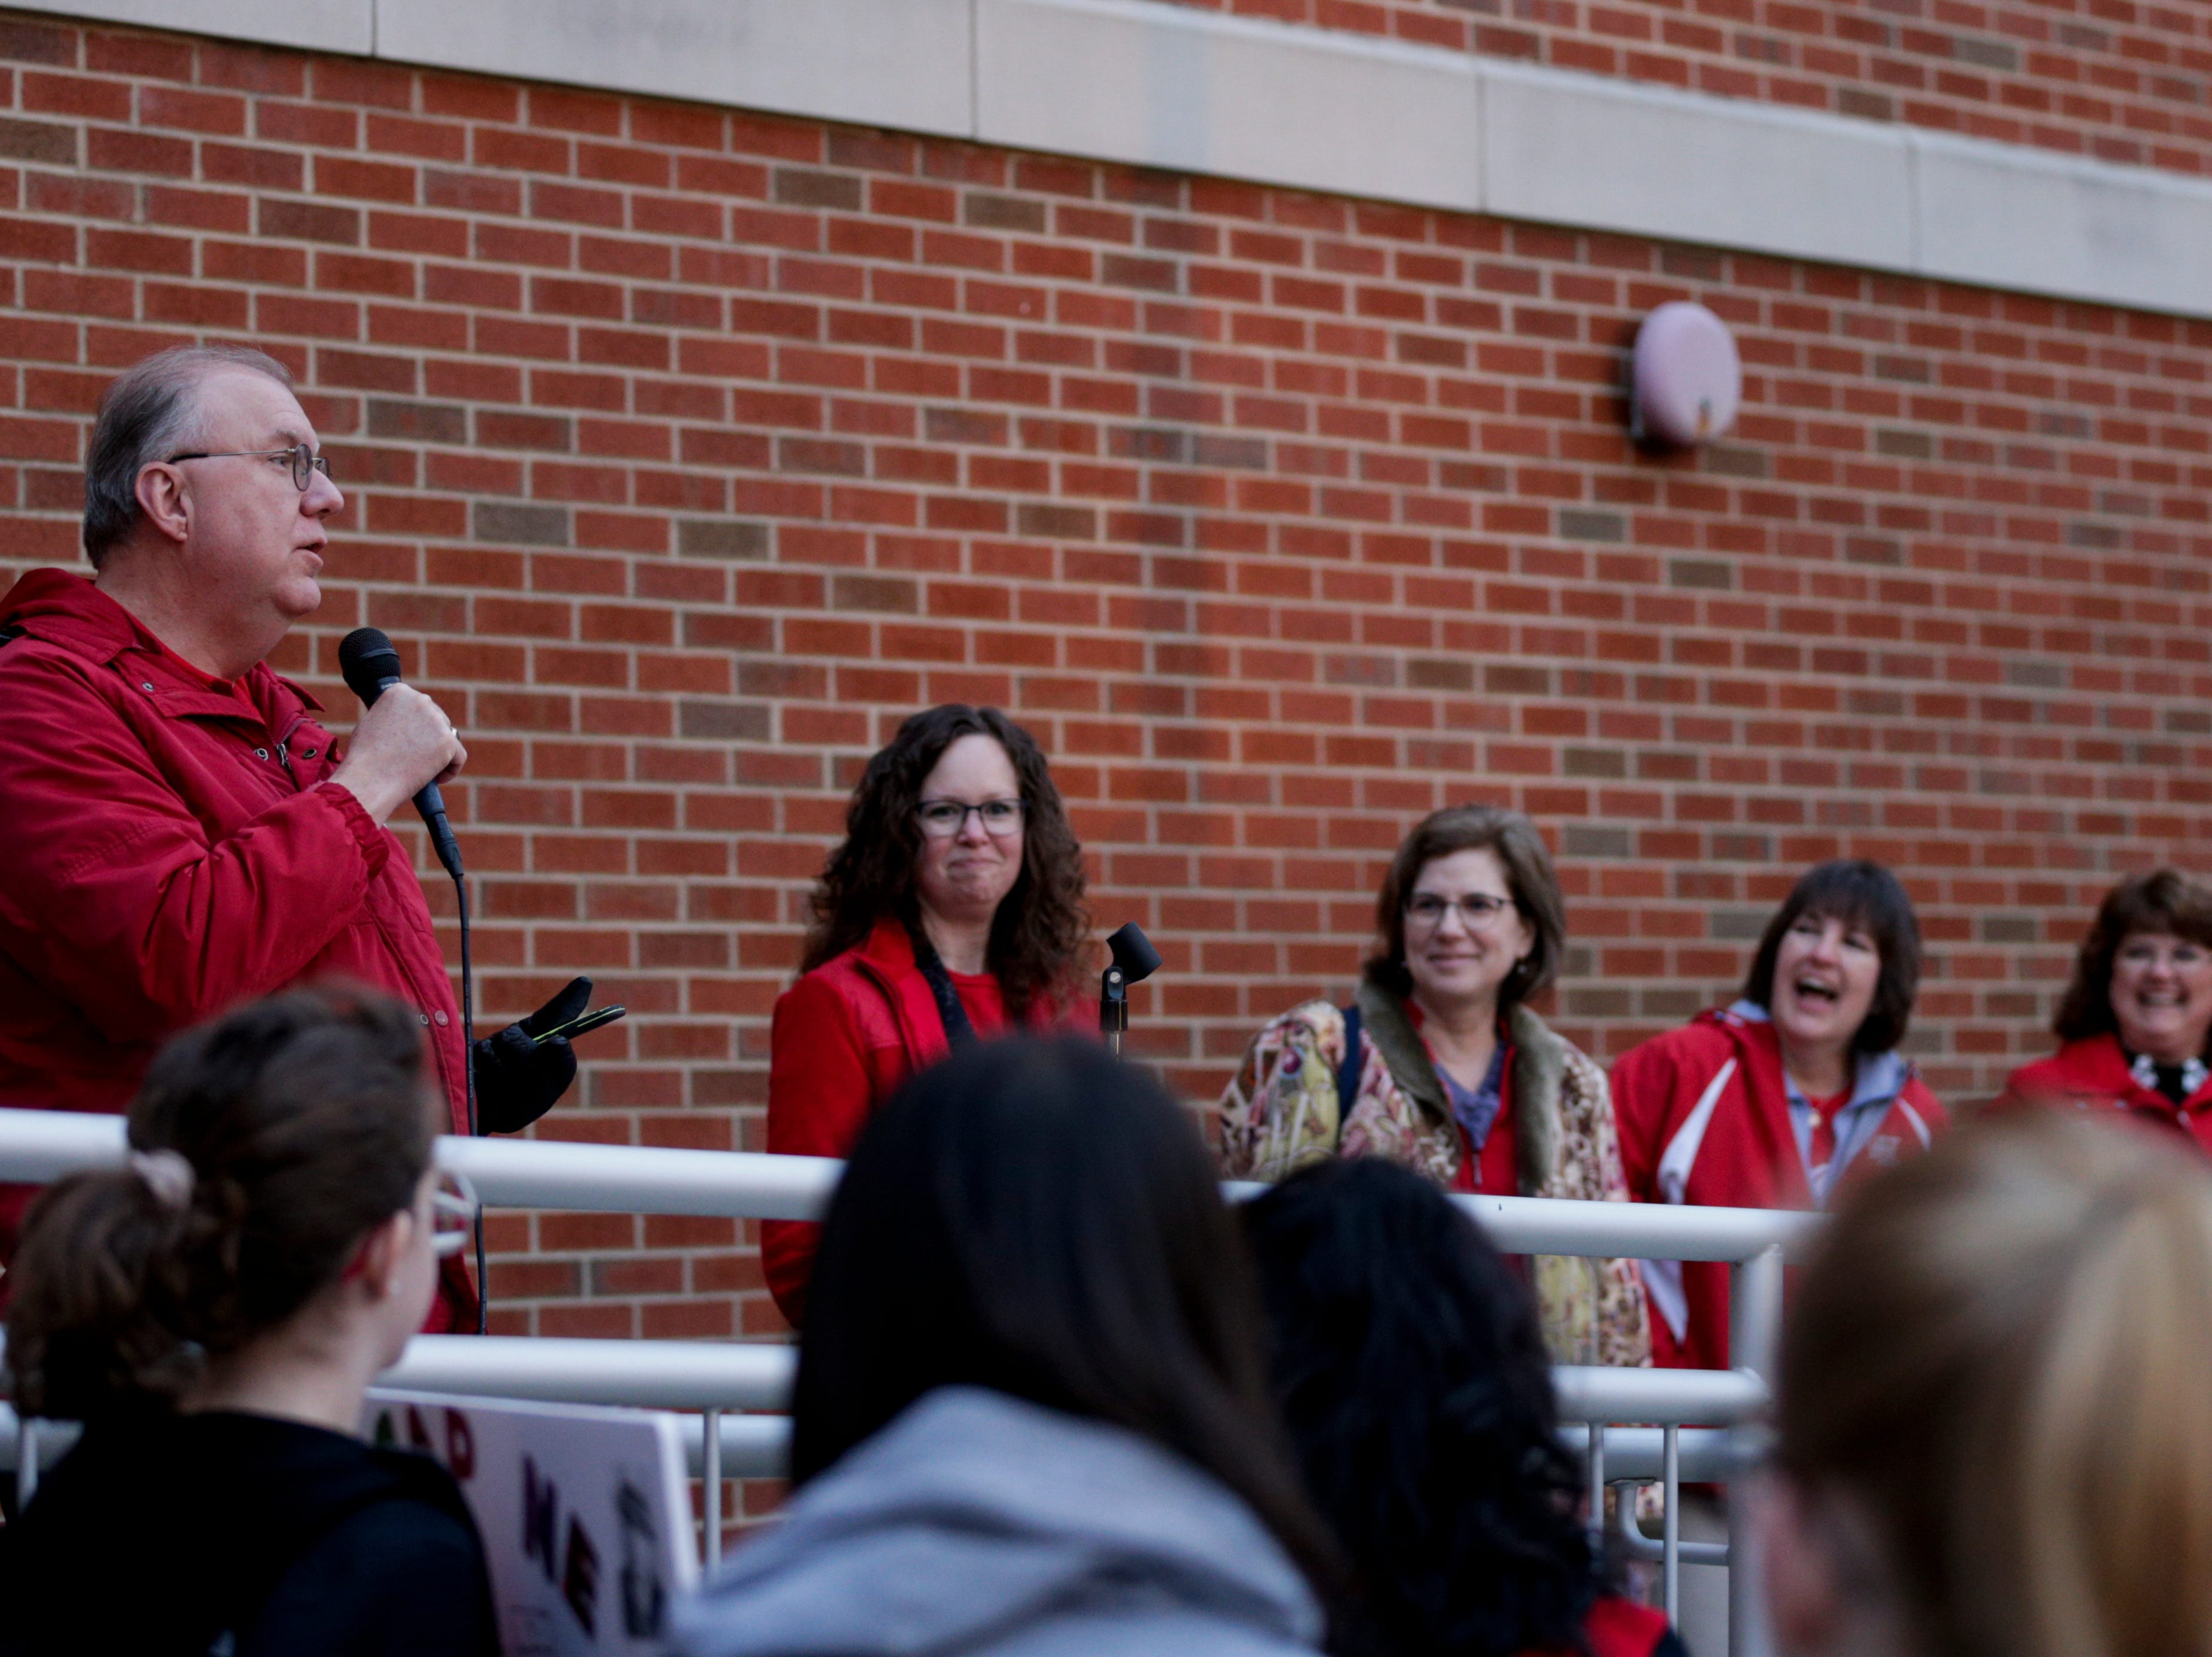 Dr. Rocky D. Killion, West Lafayette superintendent, speaks during a gathering of teachers outside of West Lafayette Jr./Sr. High School, Wednesday, April 10, 2019, in West Lafayette. Greater Lafayette teachers and community members gathered outside schools before walking in to demand teacher salary raises.(Nikos Frazier   Journal & Courier)